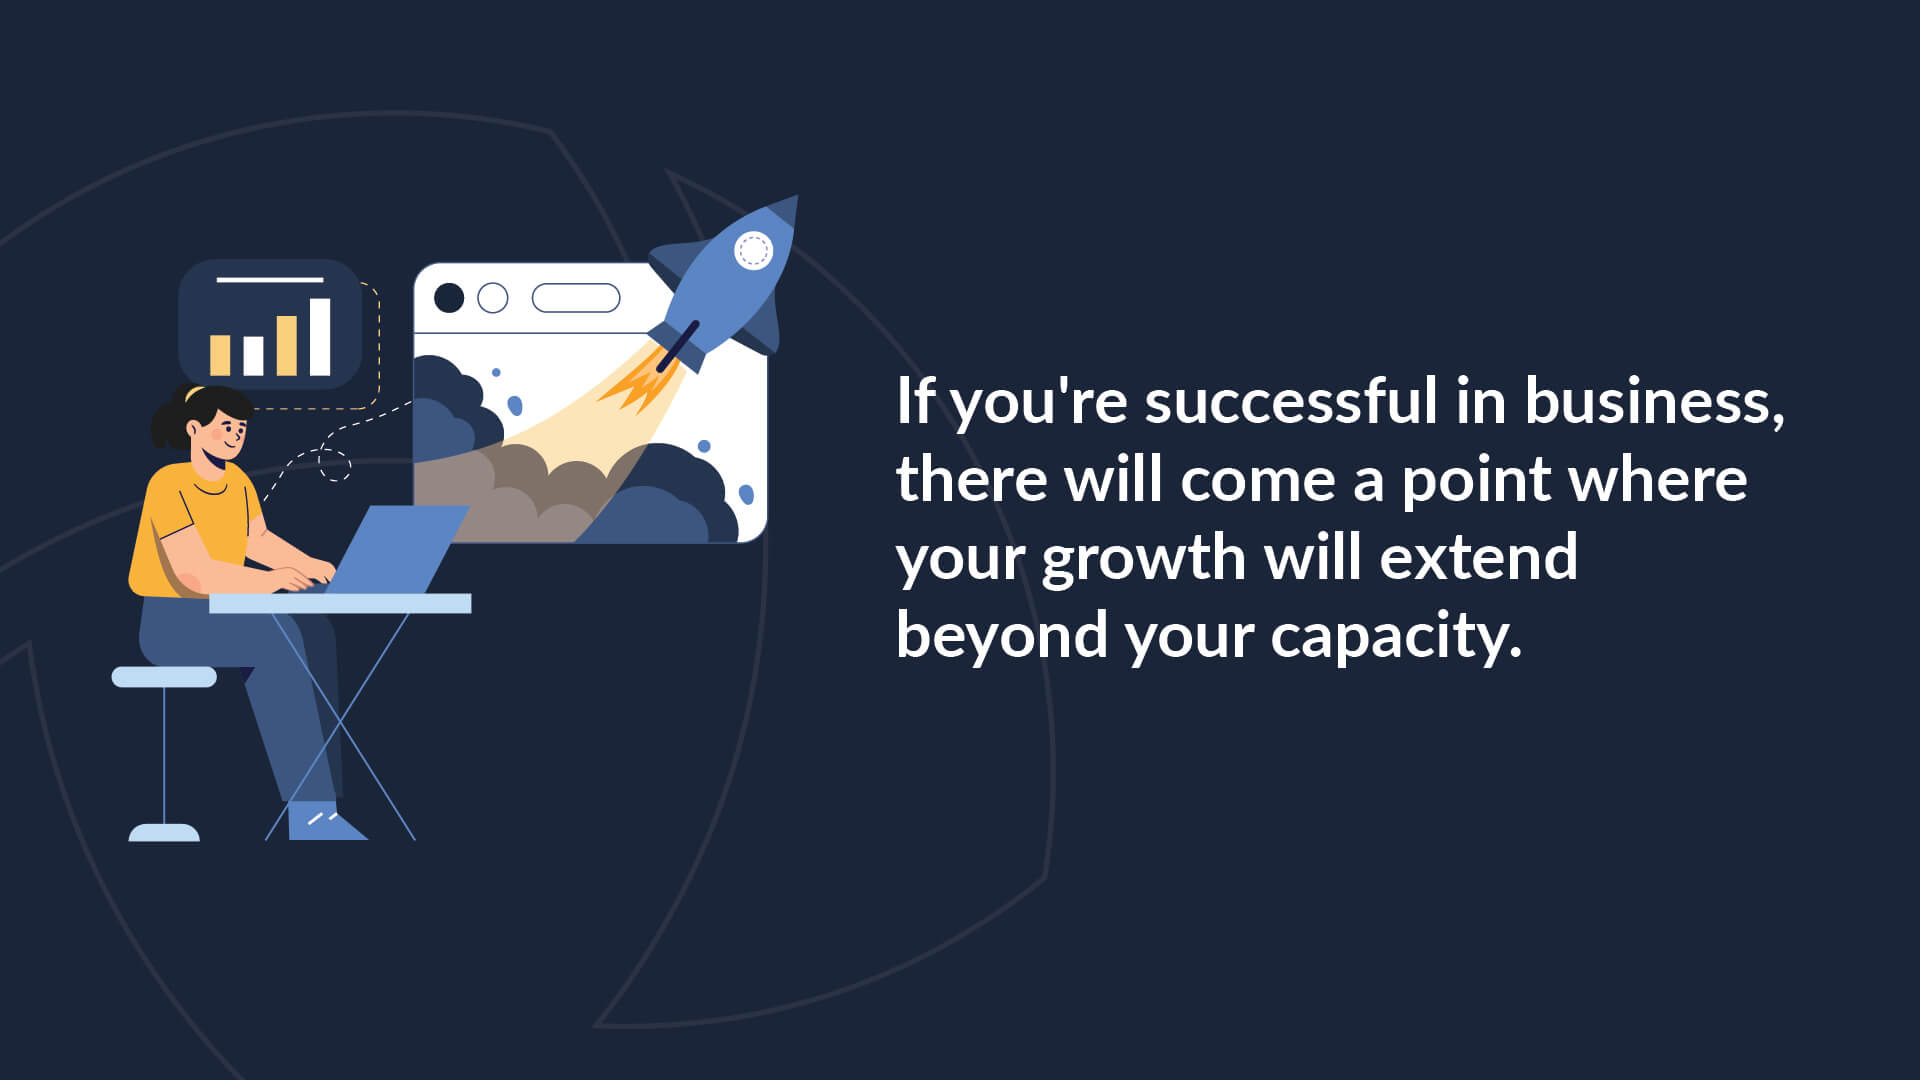 """Graphic containing the quote """"If you're successful in business, there will come a point where your growth will extend beyond your capacity""""."""